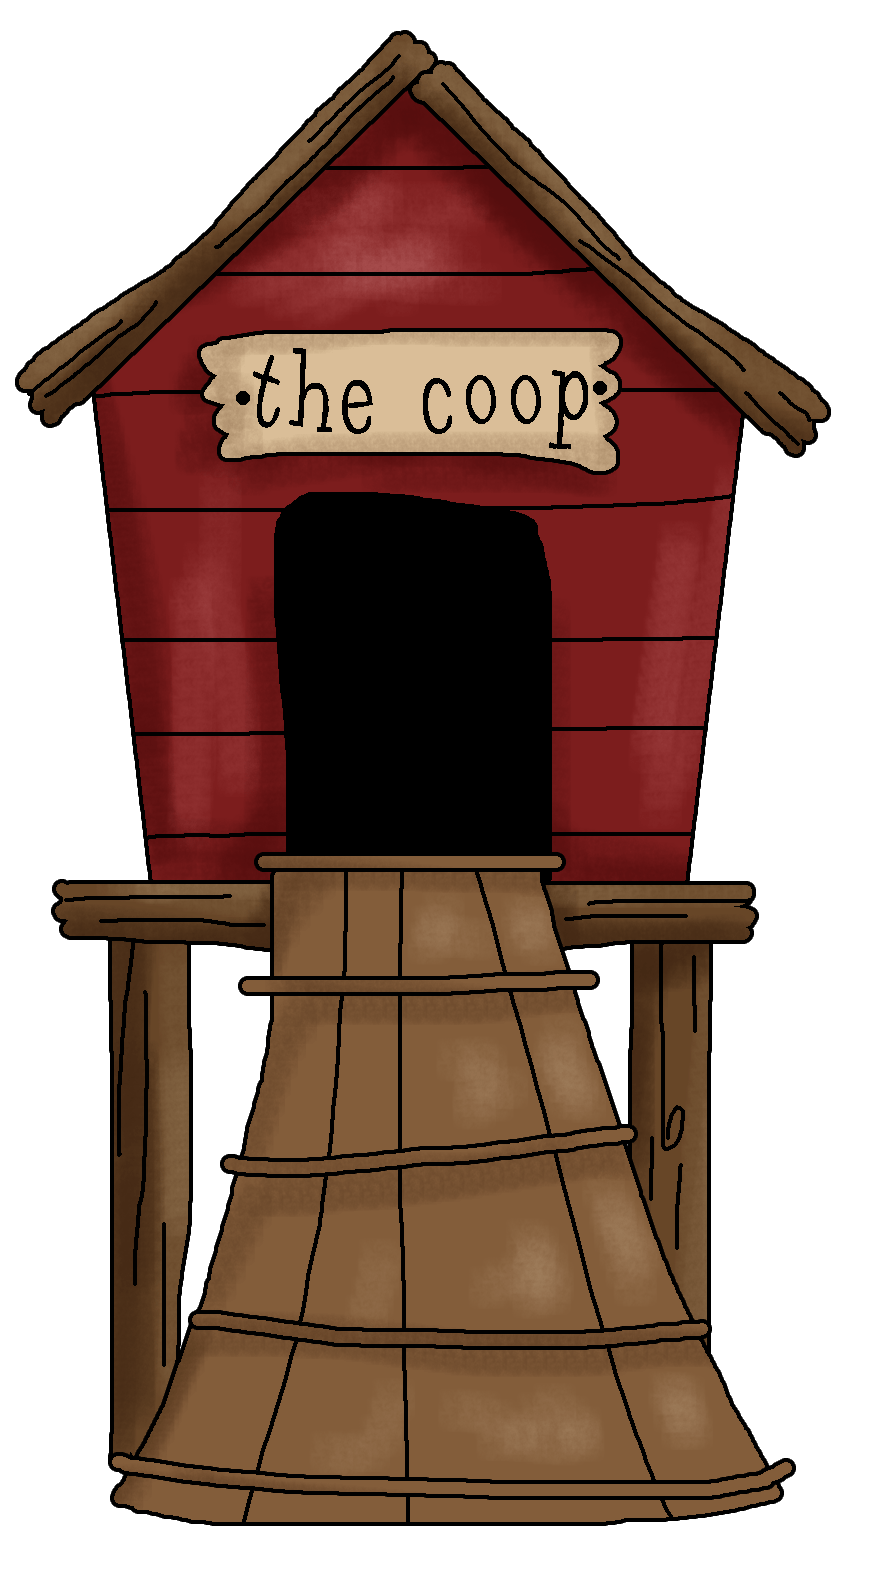 Free Chicken House Cliparts, Download Free Clip Art, Free.